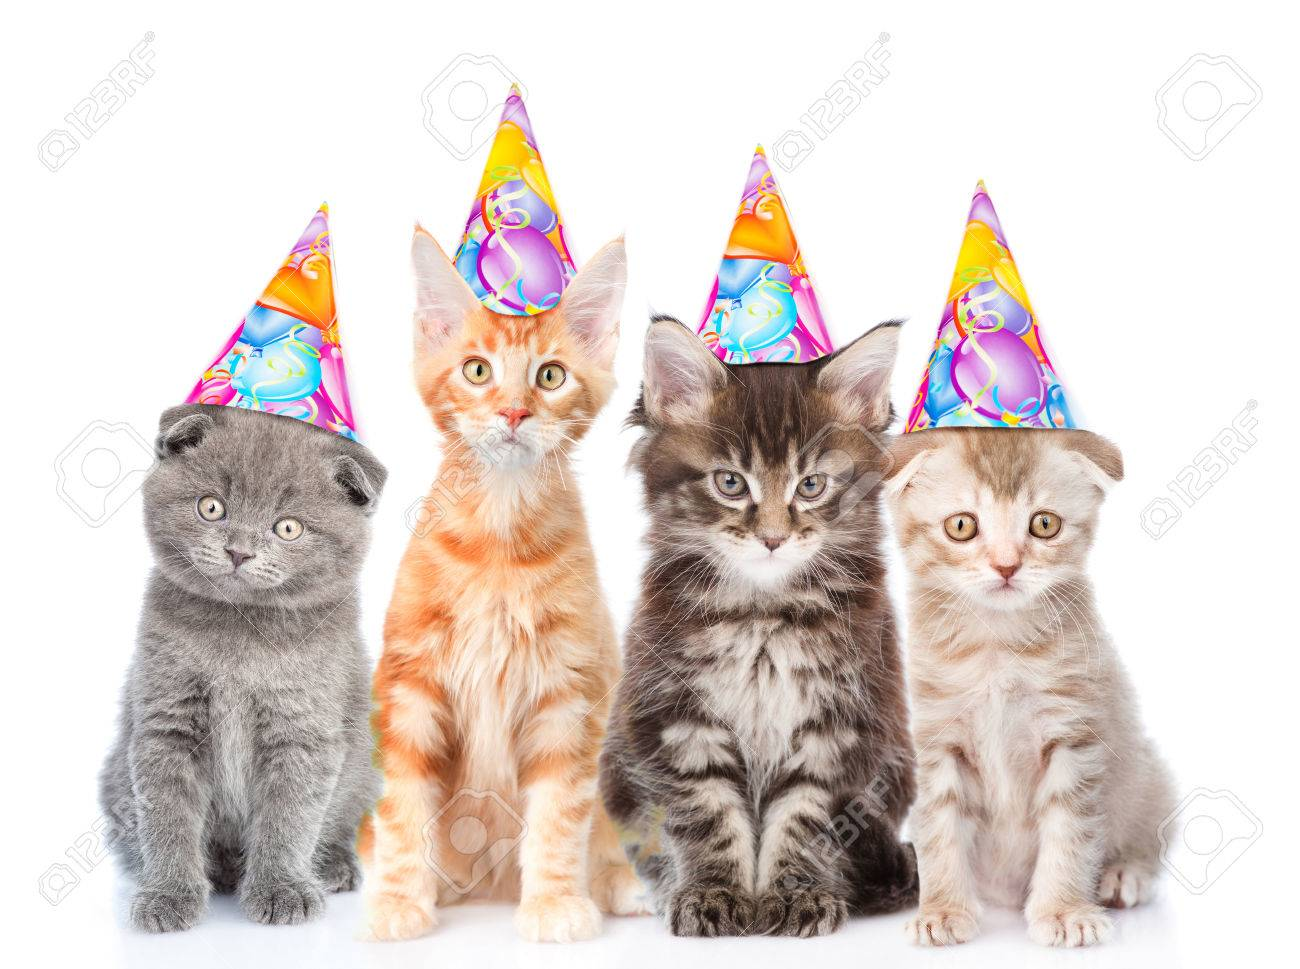 Large Group Of Small Cats With Birthday Hats Isolated On White Background Stock Photo